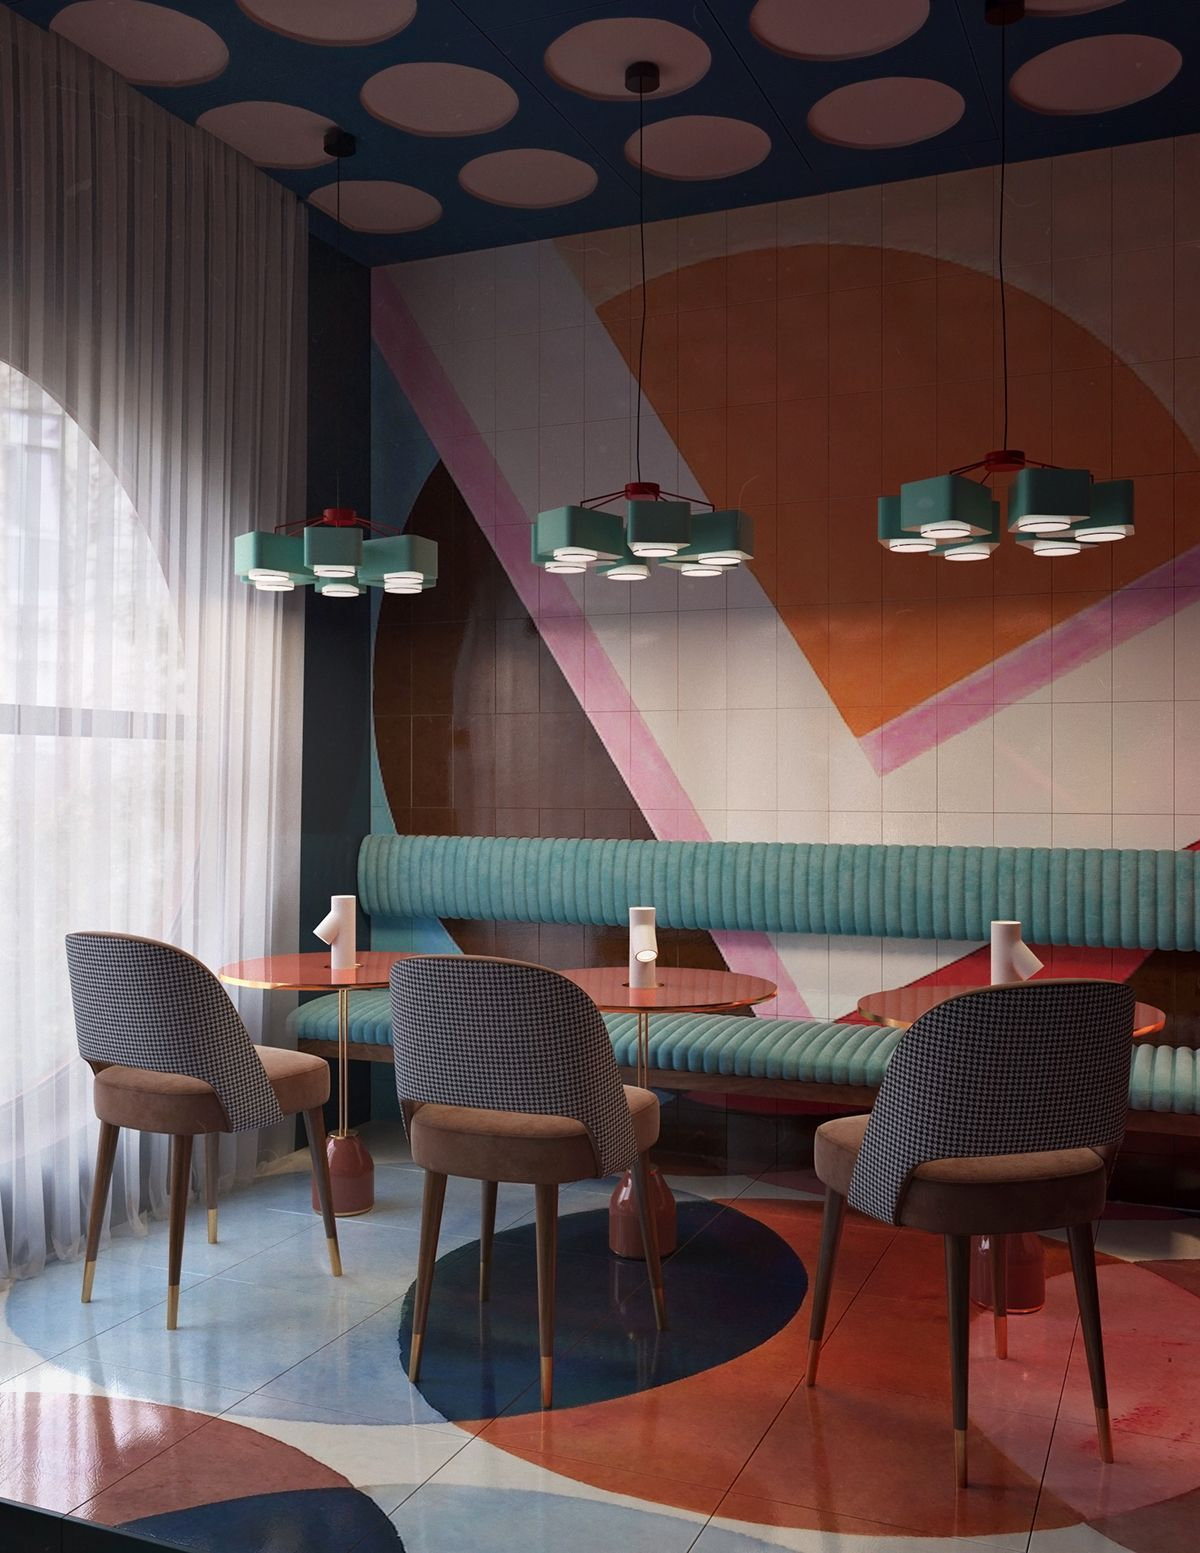 Best Hotel decoration and lighting ideas with a mid-century touch to ...